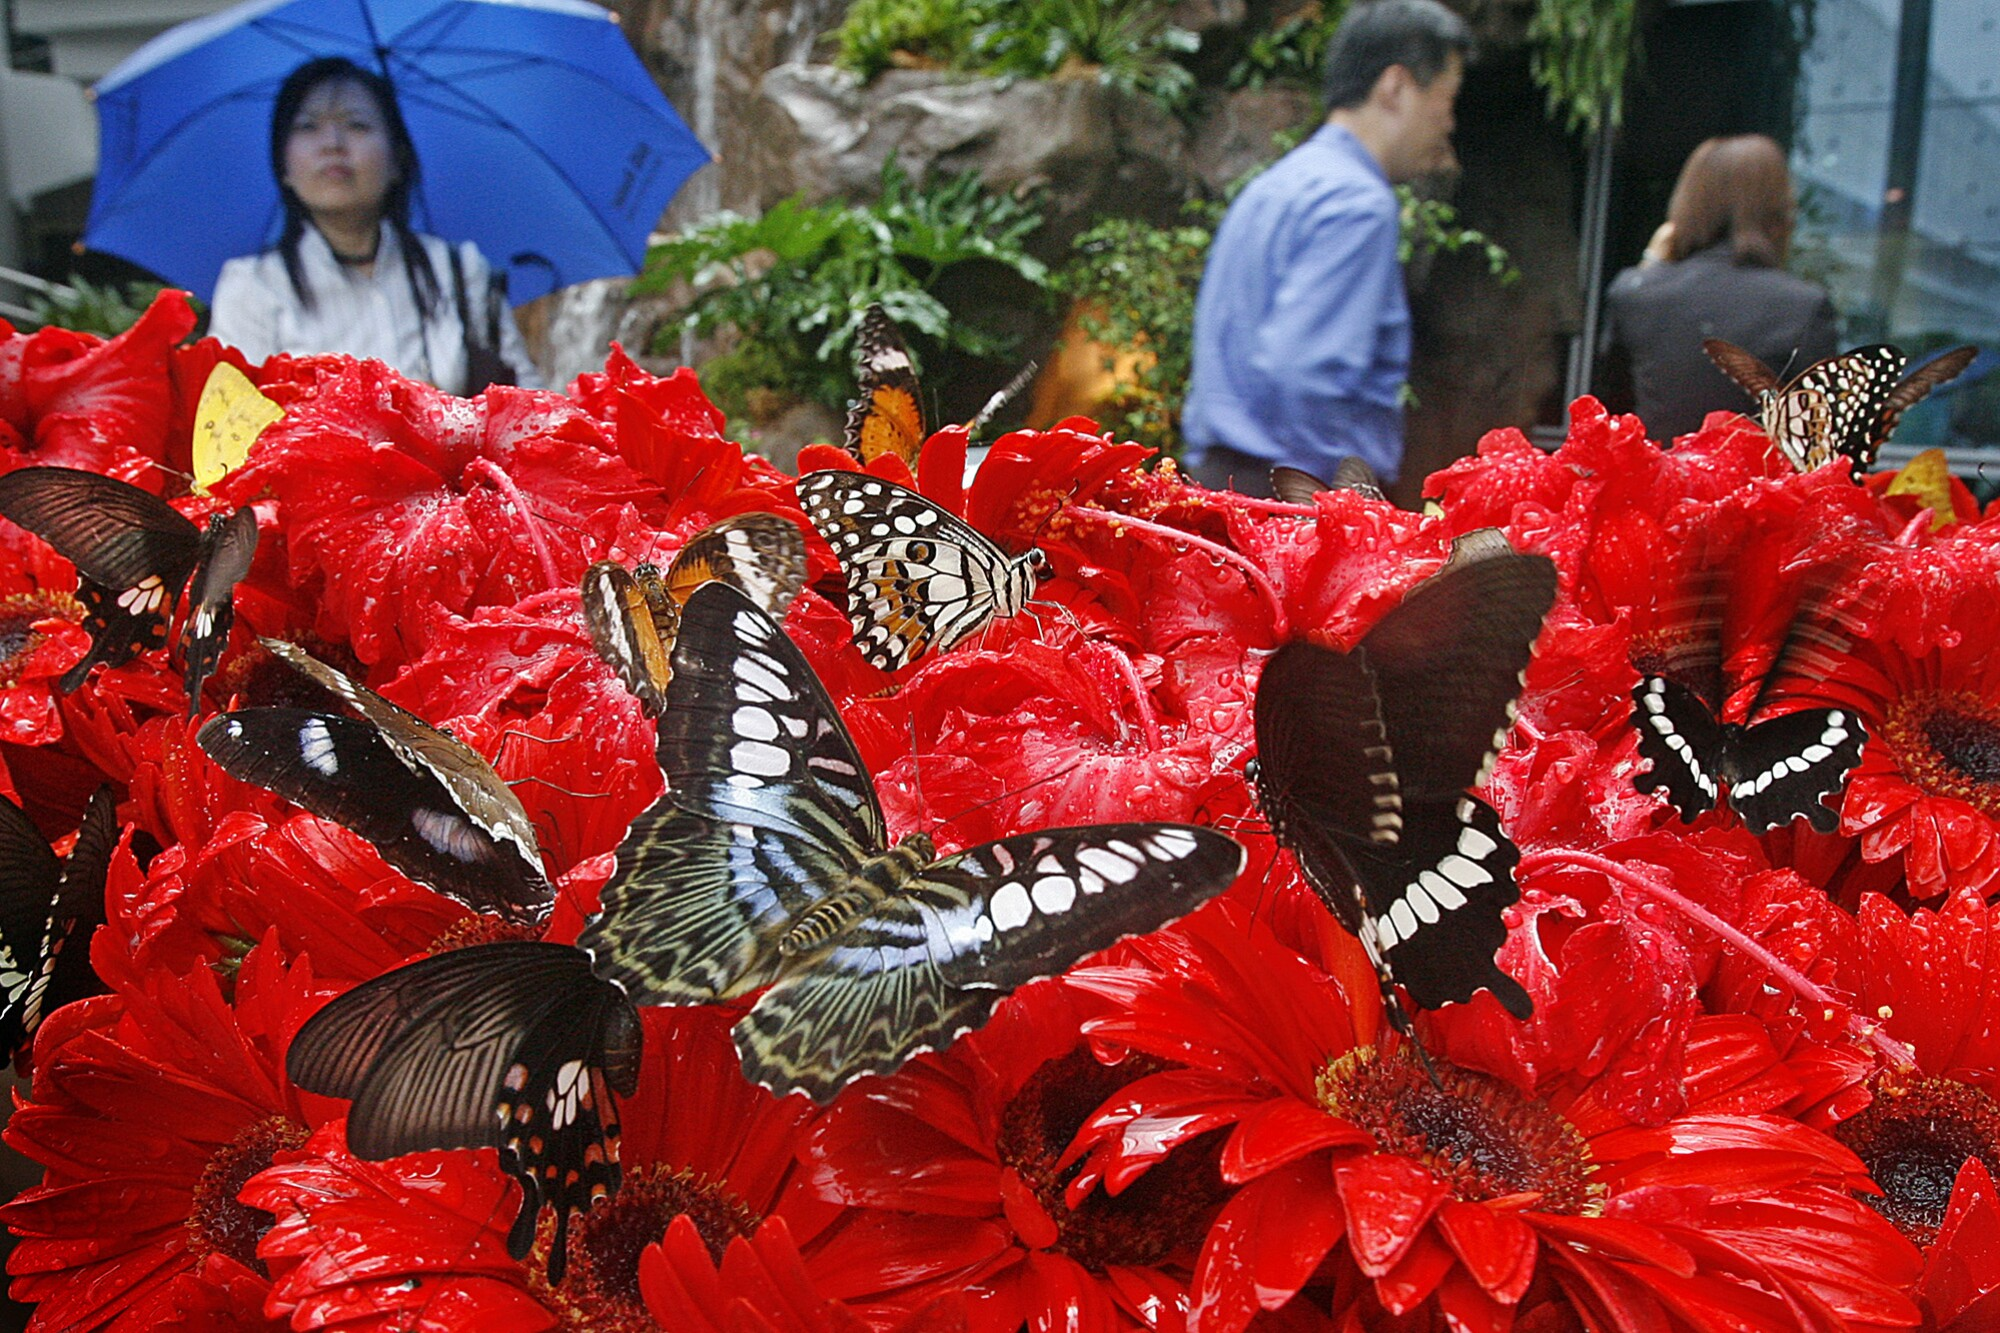 The butterfly garden at Changi Airport in Singapore.